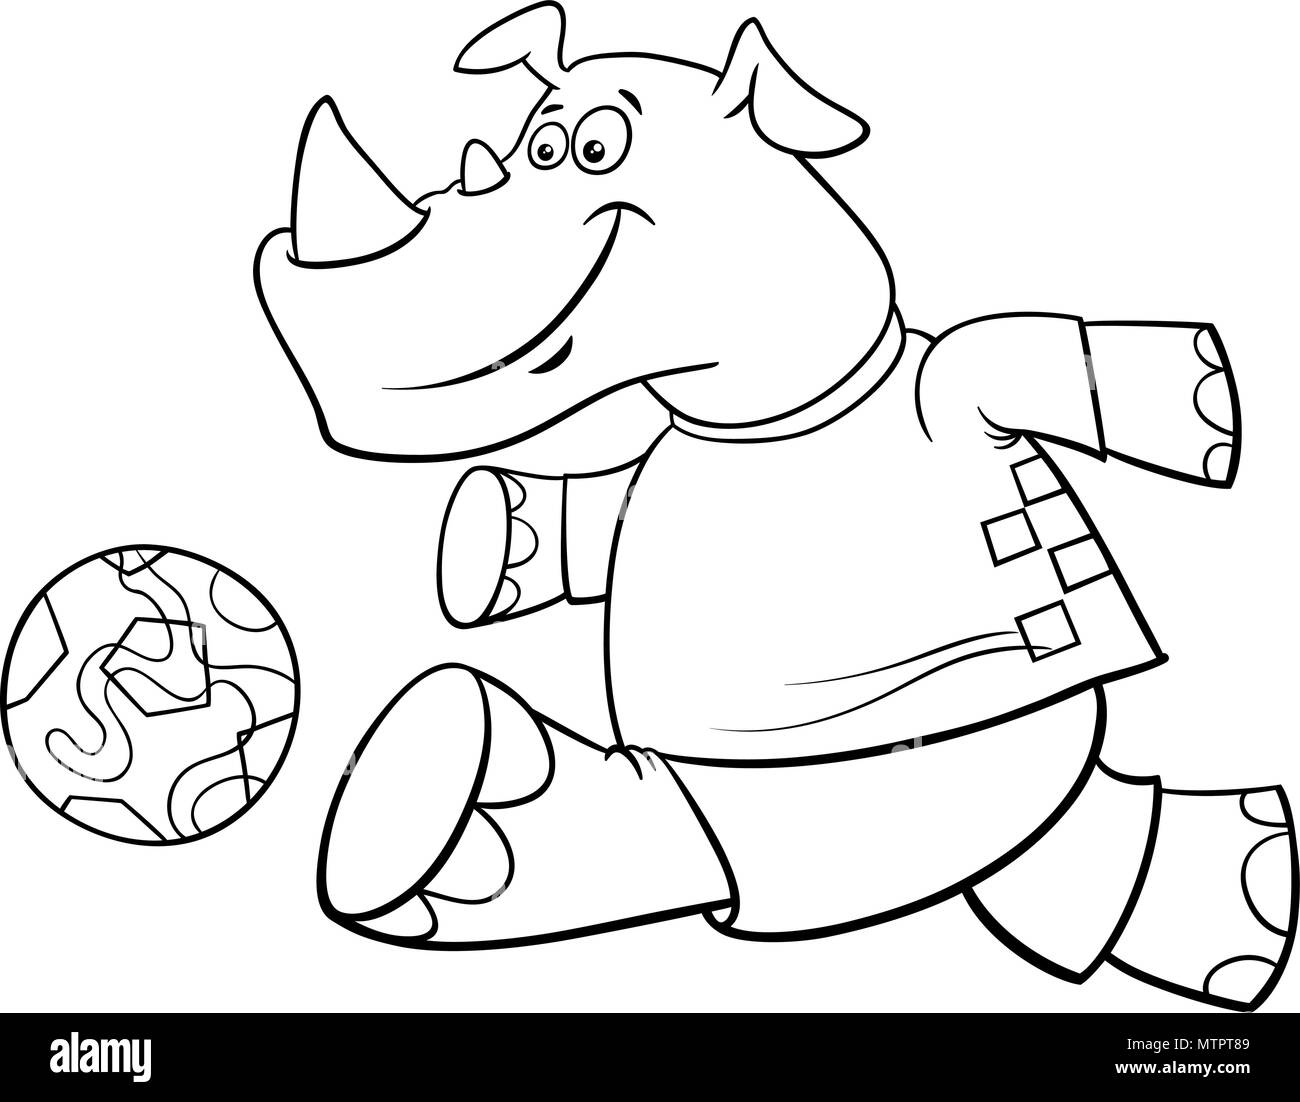 Black and White Cartoon Illustrations of Rhino Football or Soccer ...